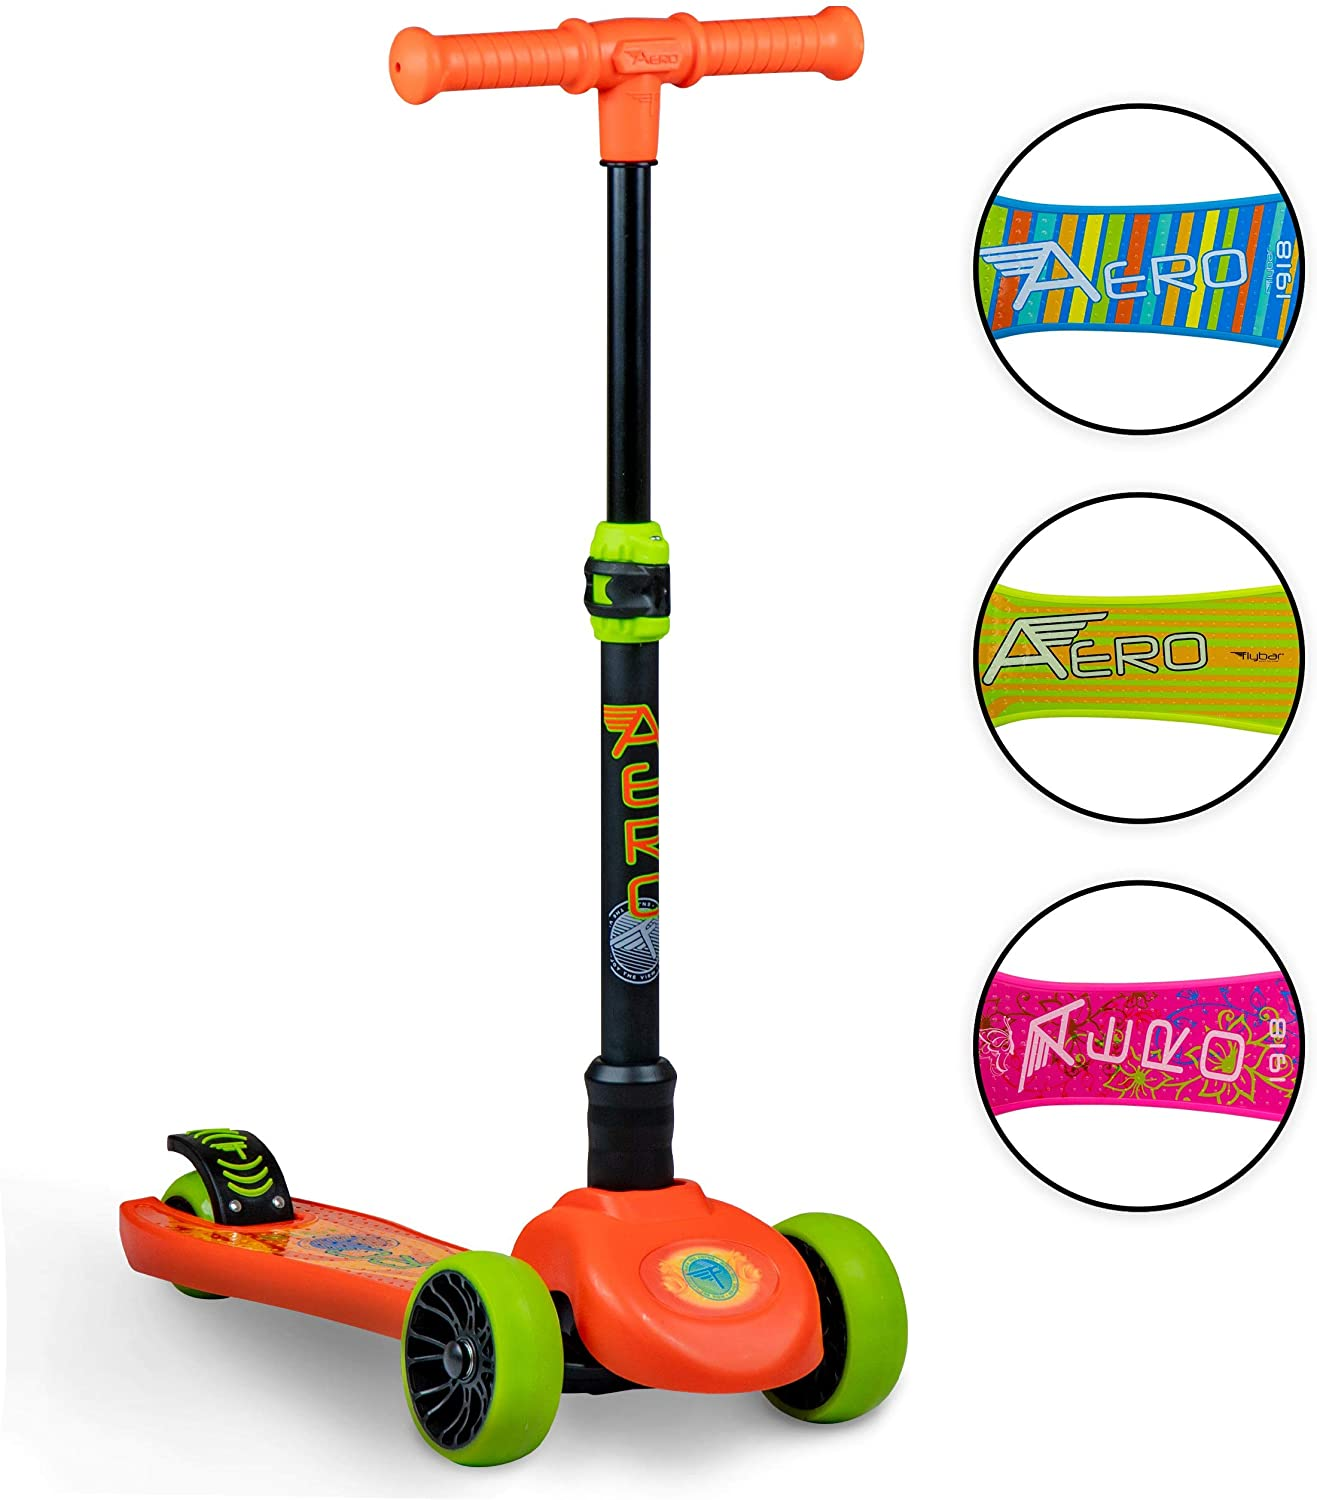 Flybar Aero 3 Wheel Scooter for Kids - Kick Scooter, Step Brake - Ages 3 and Up